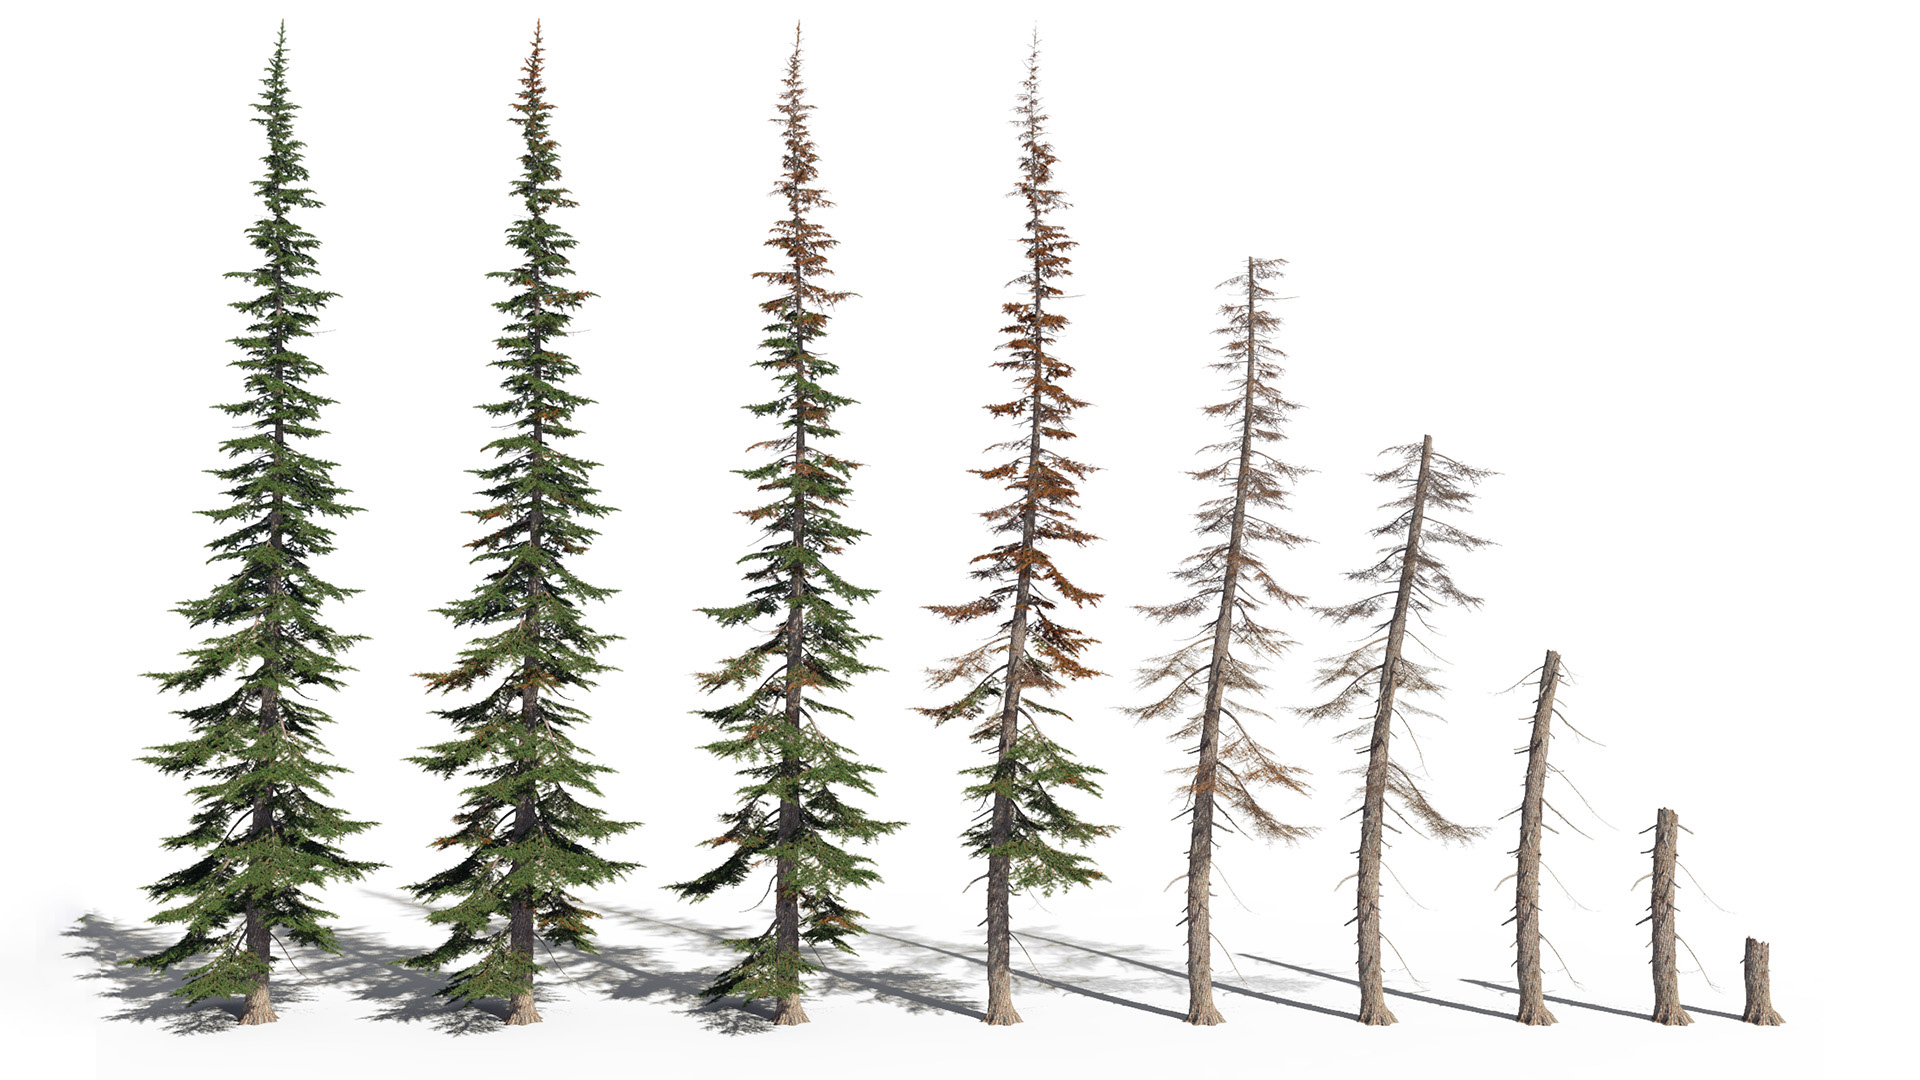 3D model of the Mountain hemlock Tsuga mertensiana health variations